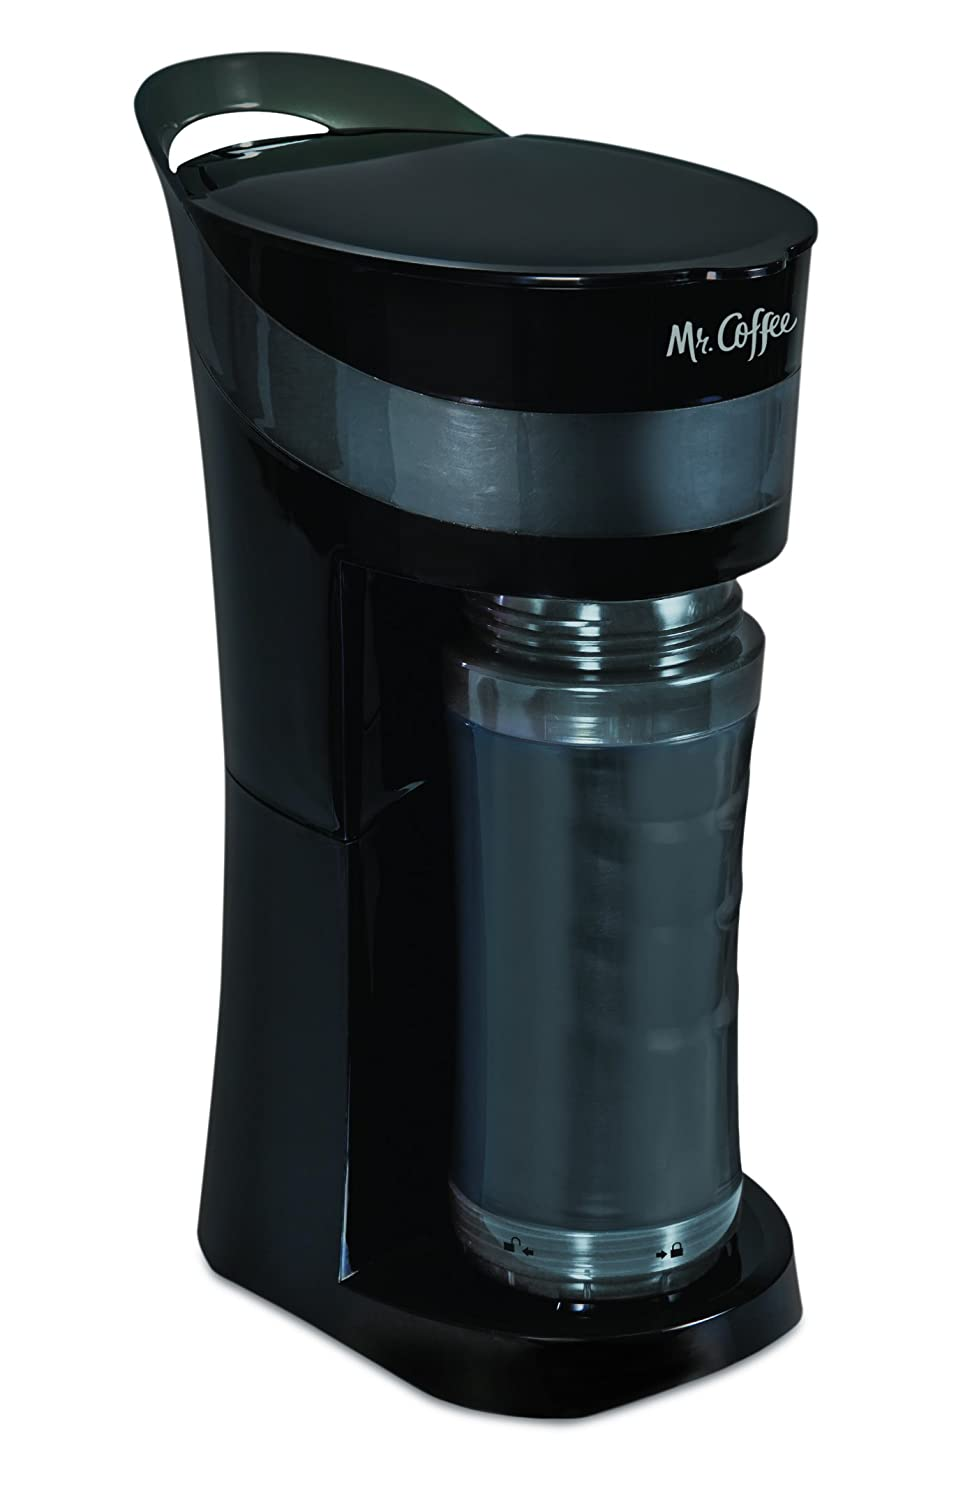 Mr. Coffee Pour! Brew! Go! Personal Coffee Maker, Midnight Black ;;;